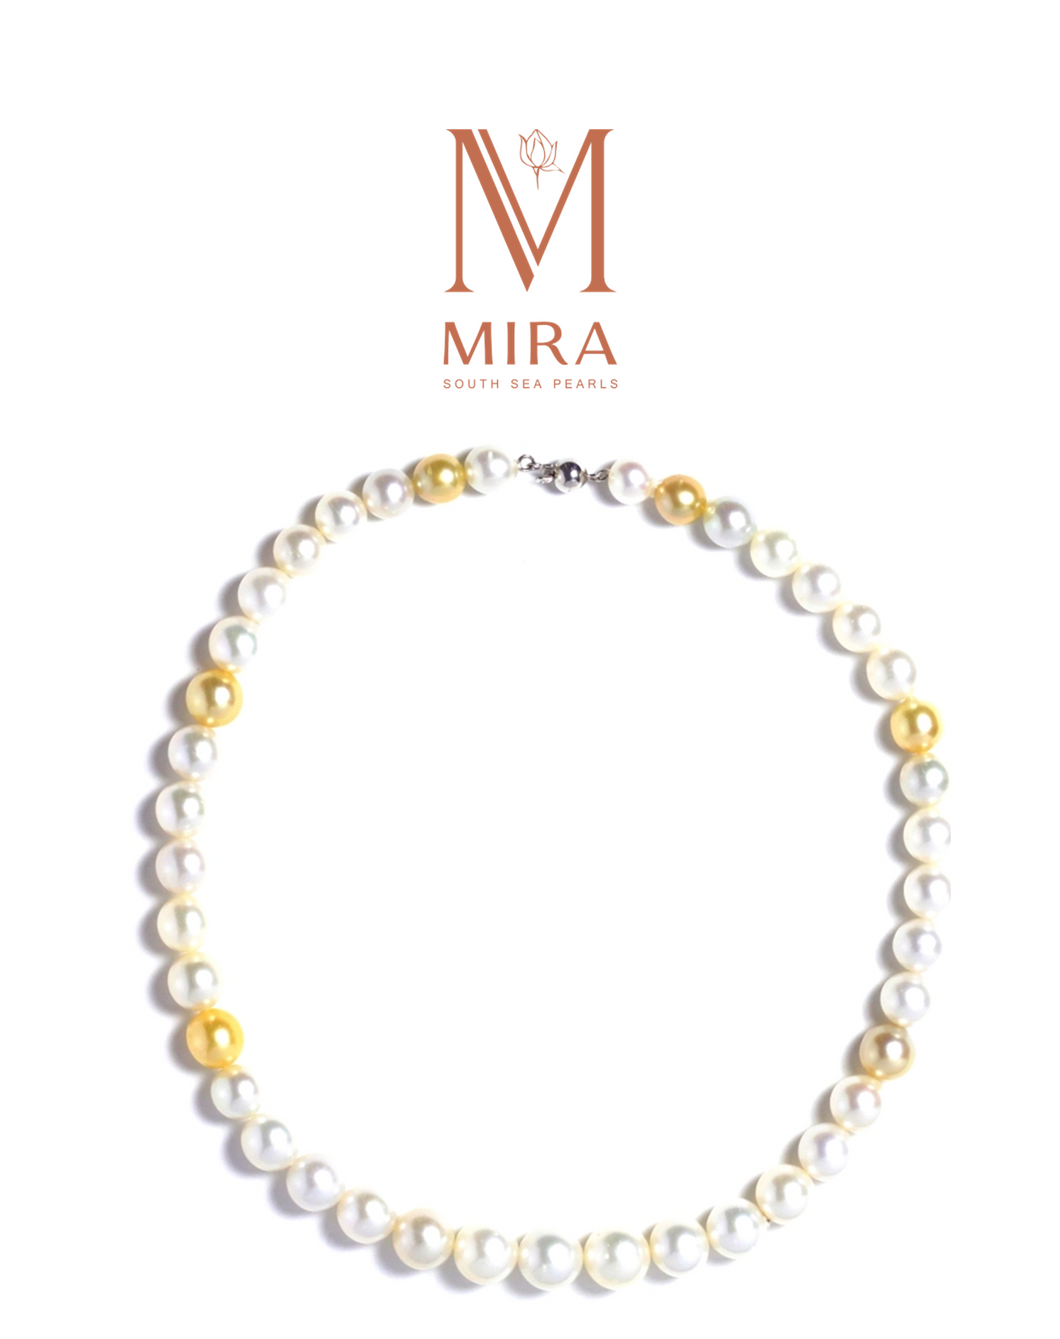 MIRA South sea pearl Necklace